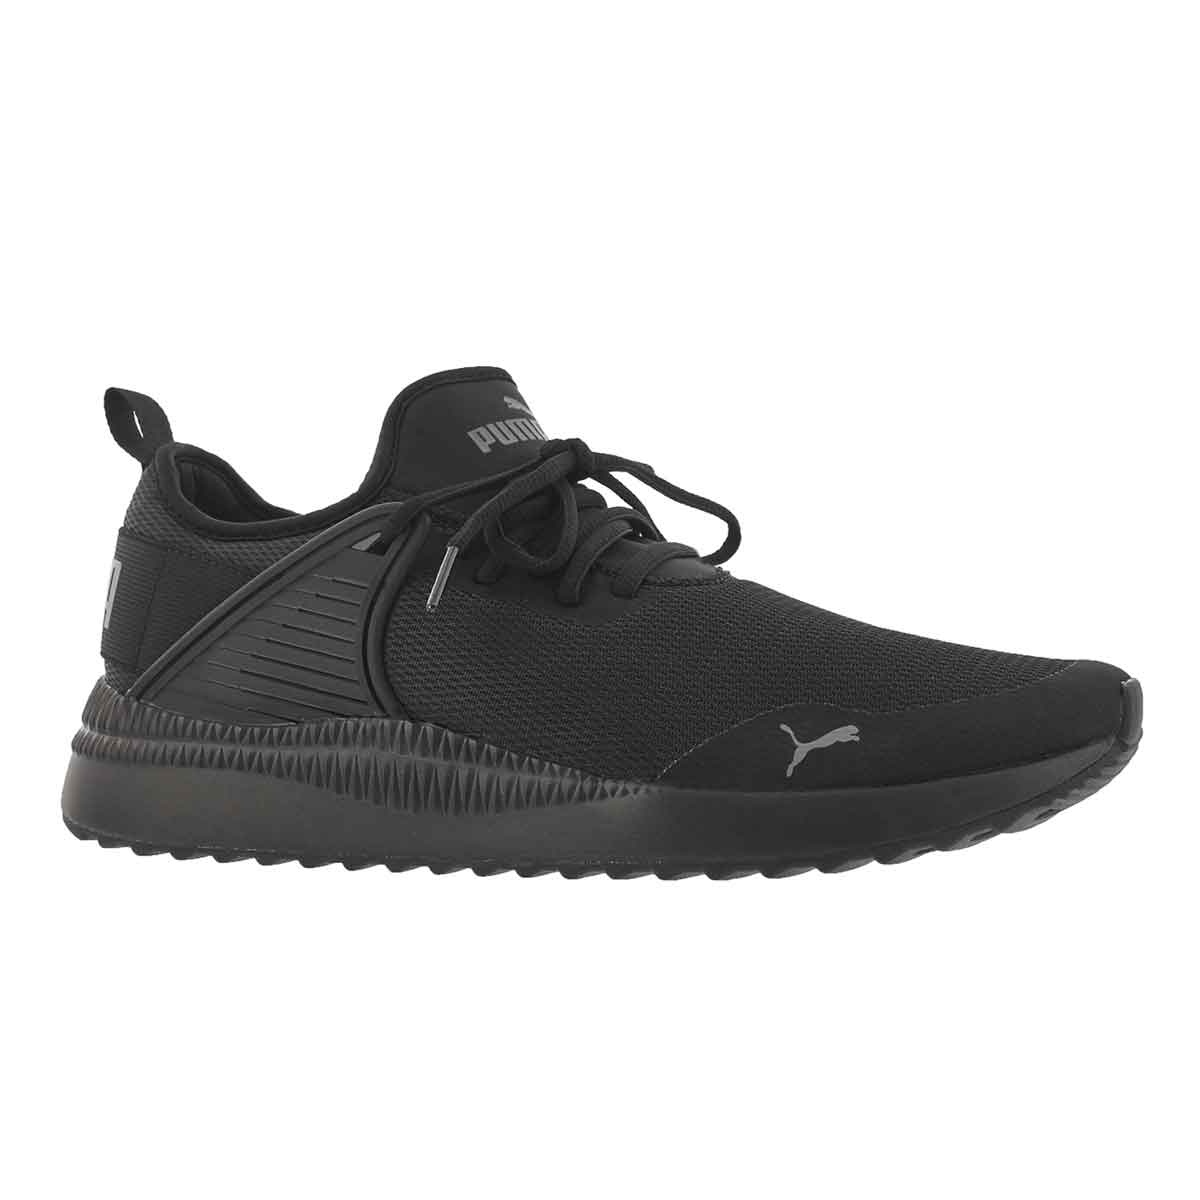 Men's PACER NEXT CAGE black sneakers